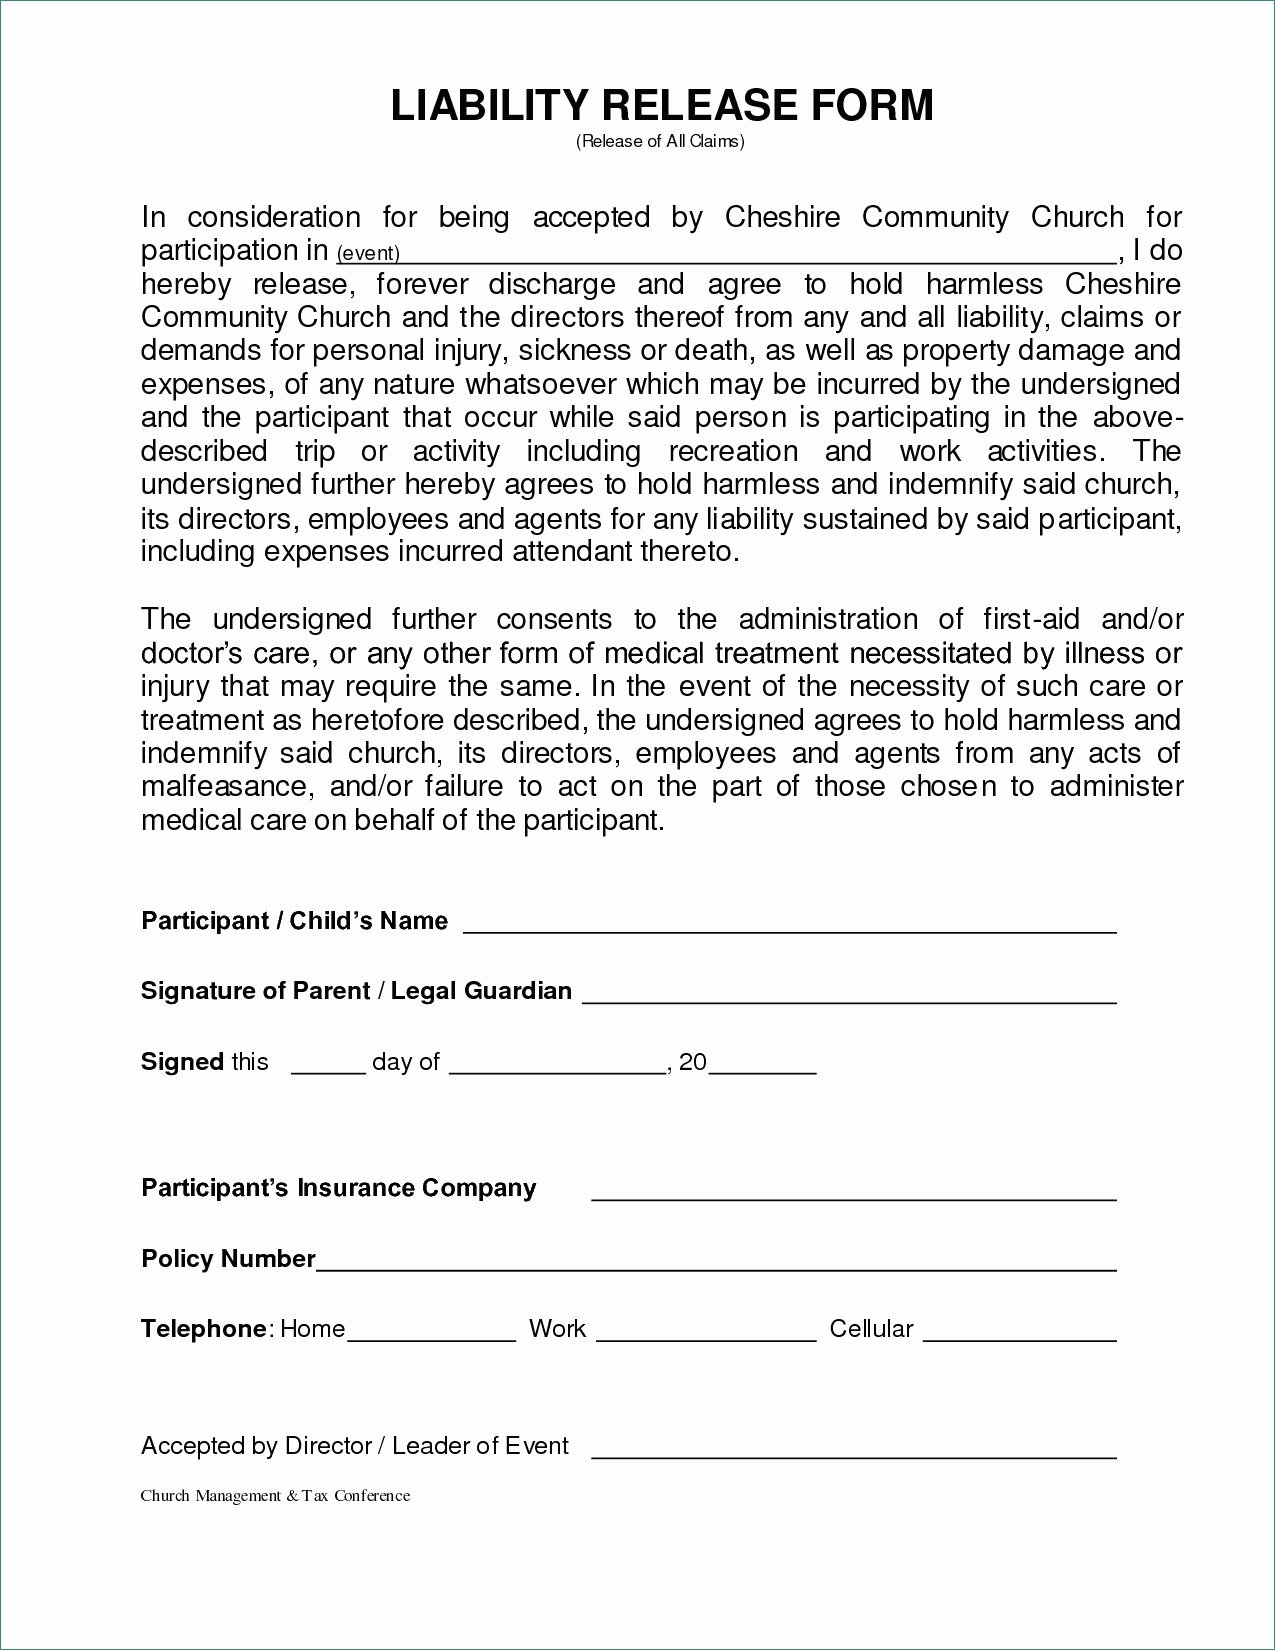 General Release form Template Best Of General Liability Release form Image – General Liability